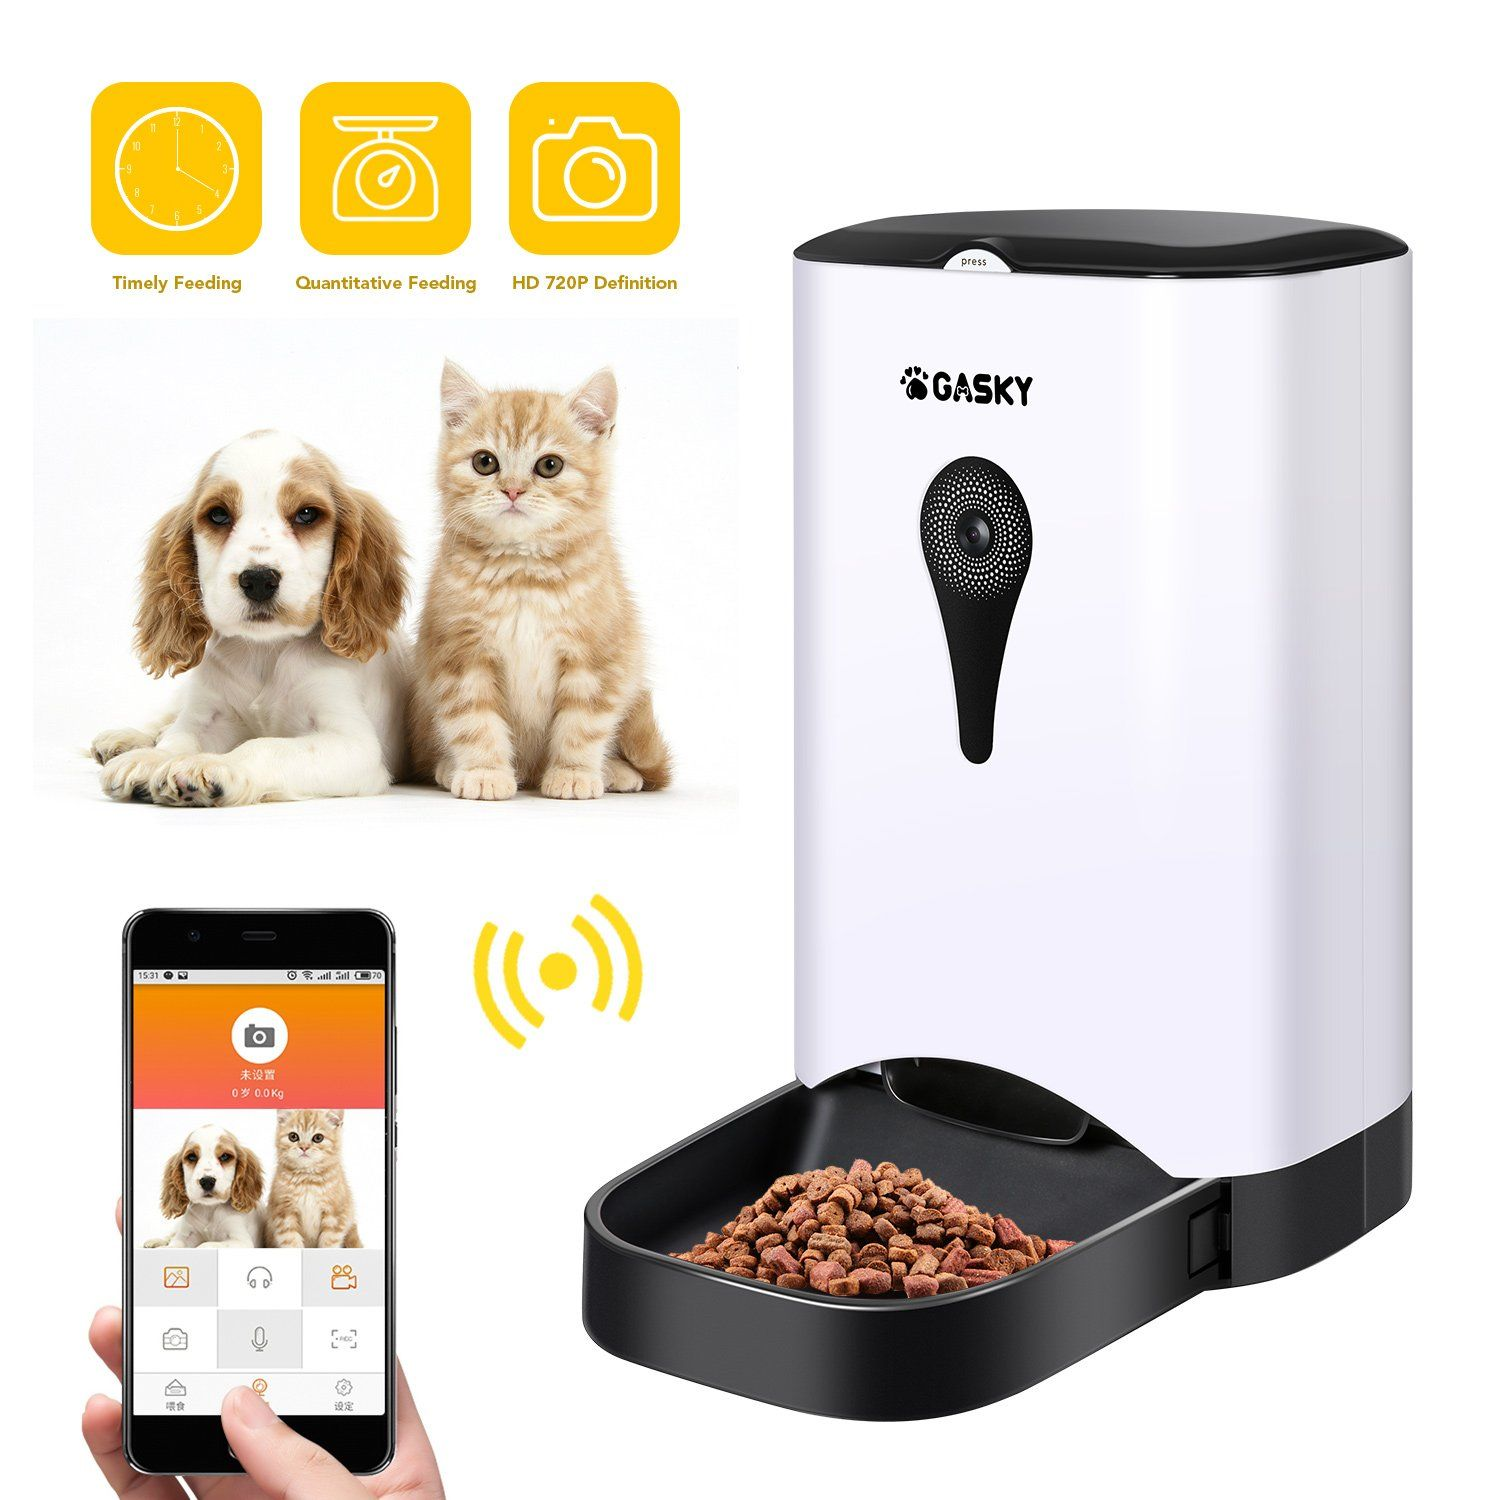 Gasky Automatic Wifi Cat Smart Feeder 4 5l Large Capacity App